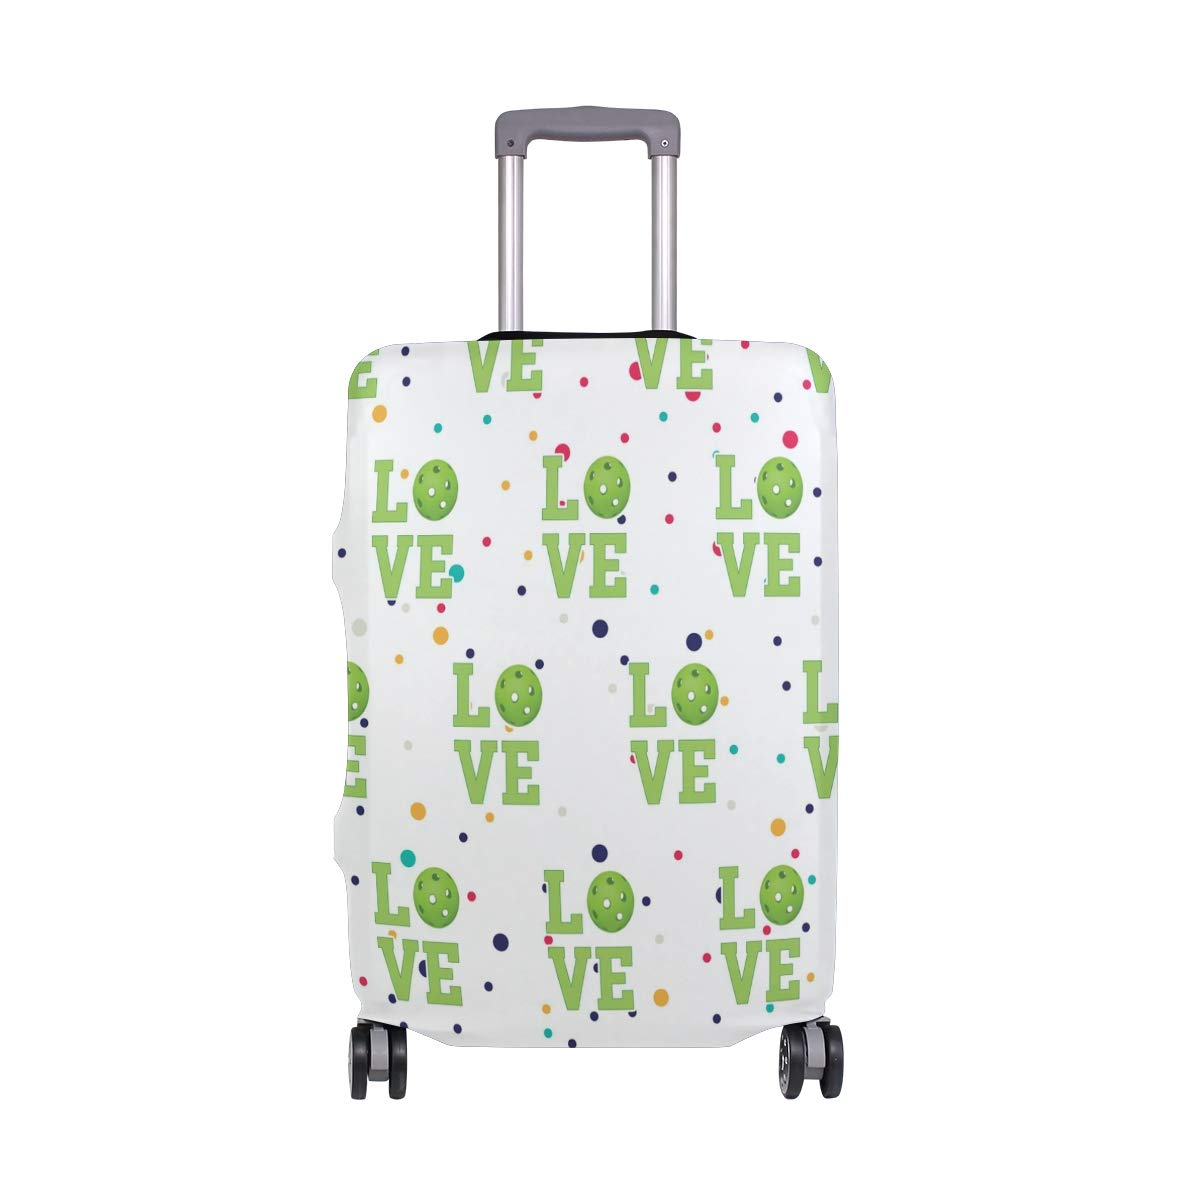 Love Pickleball Travel Luggage Cover - Suitcase Protector HLive Spandex Dust Proof Covers with Zipper, Fits 18-32 inch